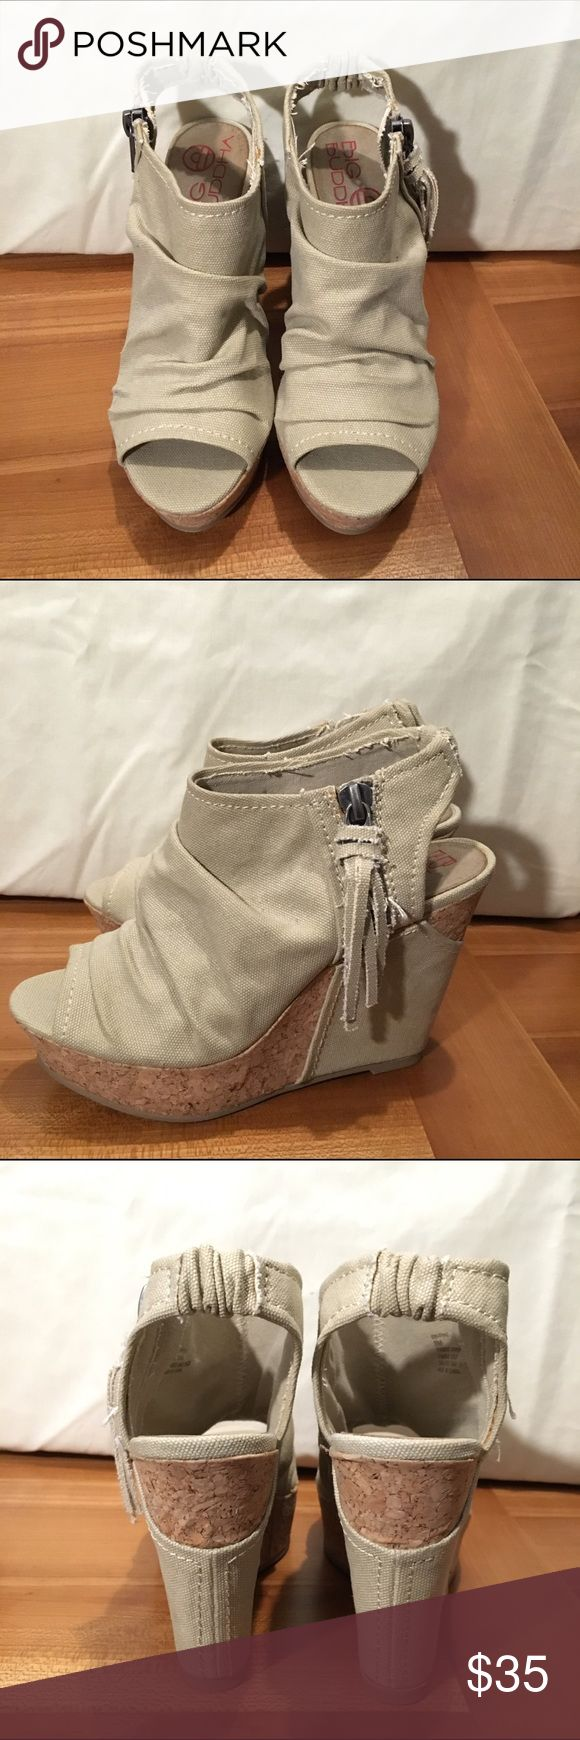 Big Buddha cork & canvas wedges size 8 Big Buddha cork & khaki canvas wedge platform heels.  Size 8.  Worn once or twice. Excellent used condition. Big Buddha Shoes Wedges